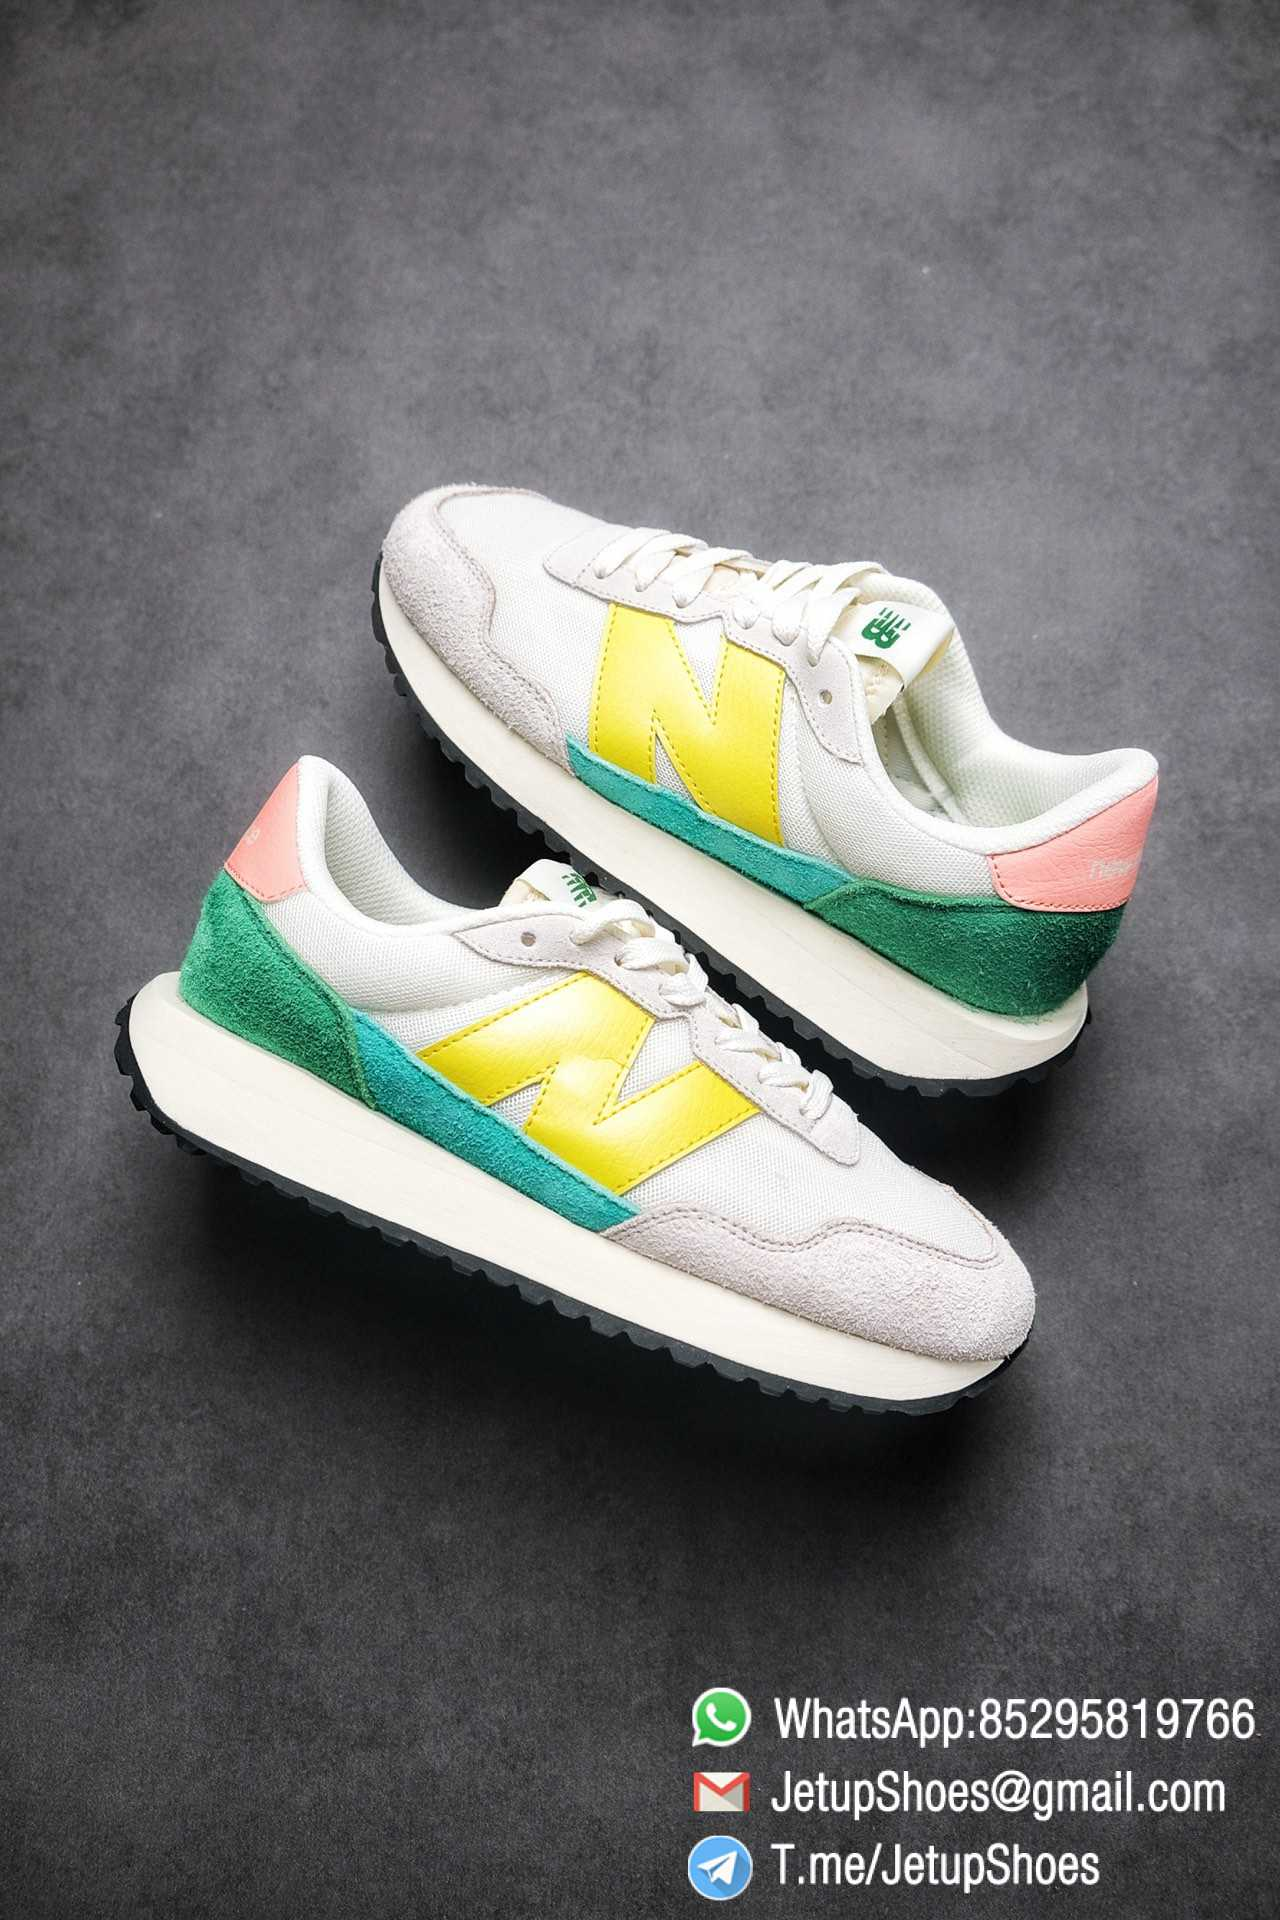 Best Replica New Balance 237 Light Grey Yellow Green Pink Multi Color SKU MS237AS1 High Quality Running Shoes 01